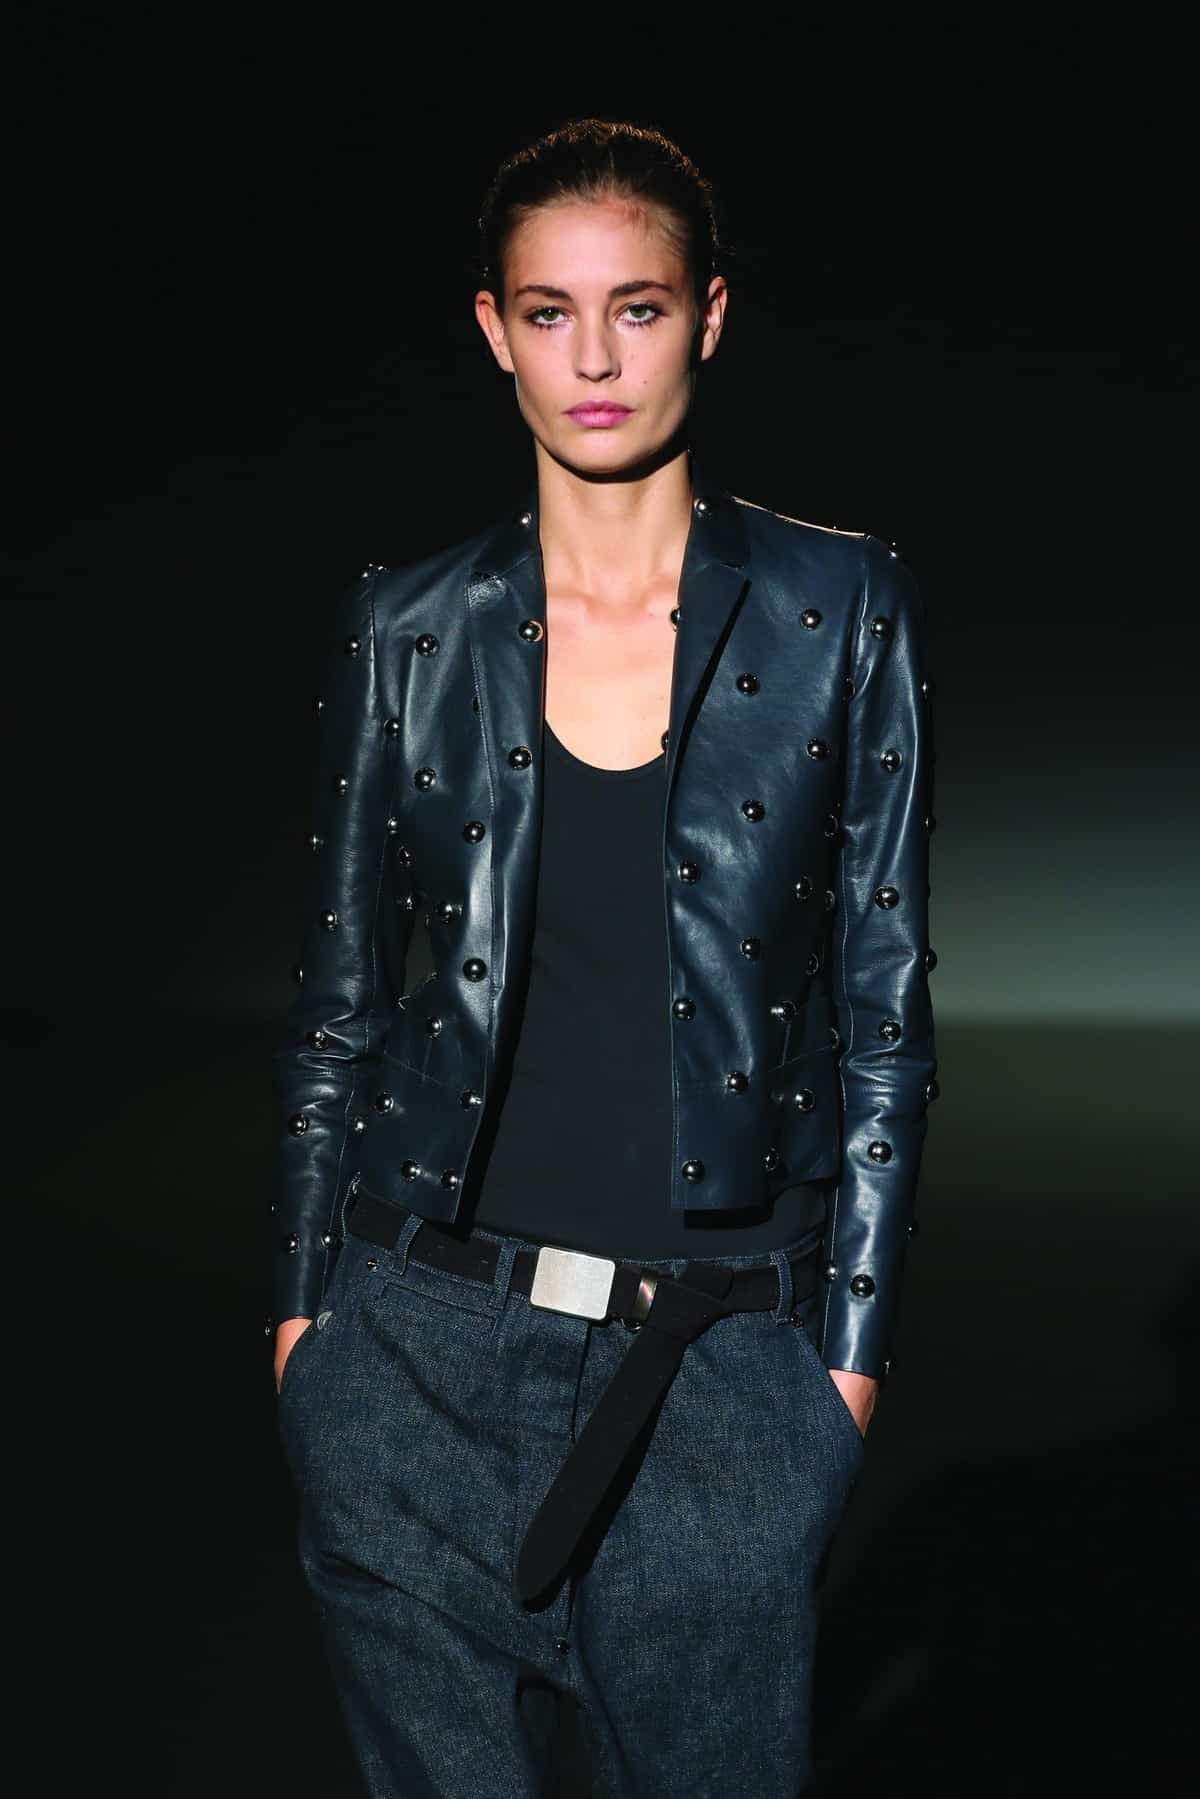 Women's leather jacket trends spring 2016